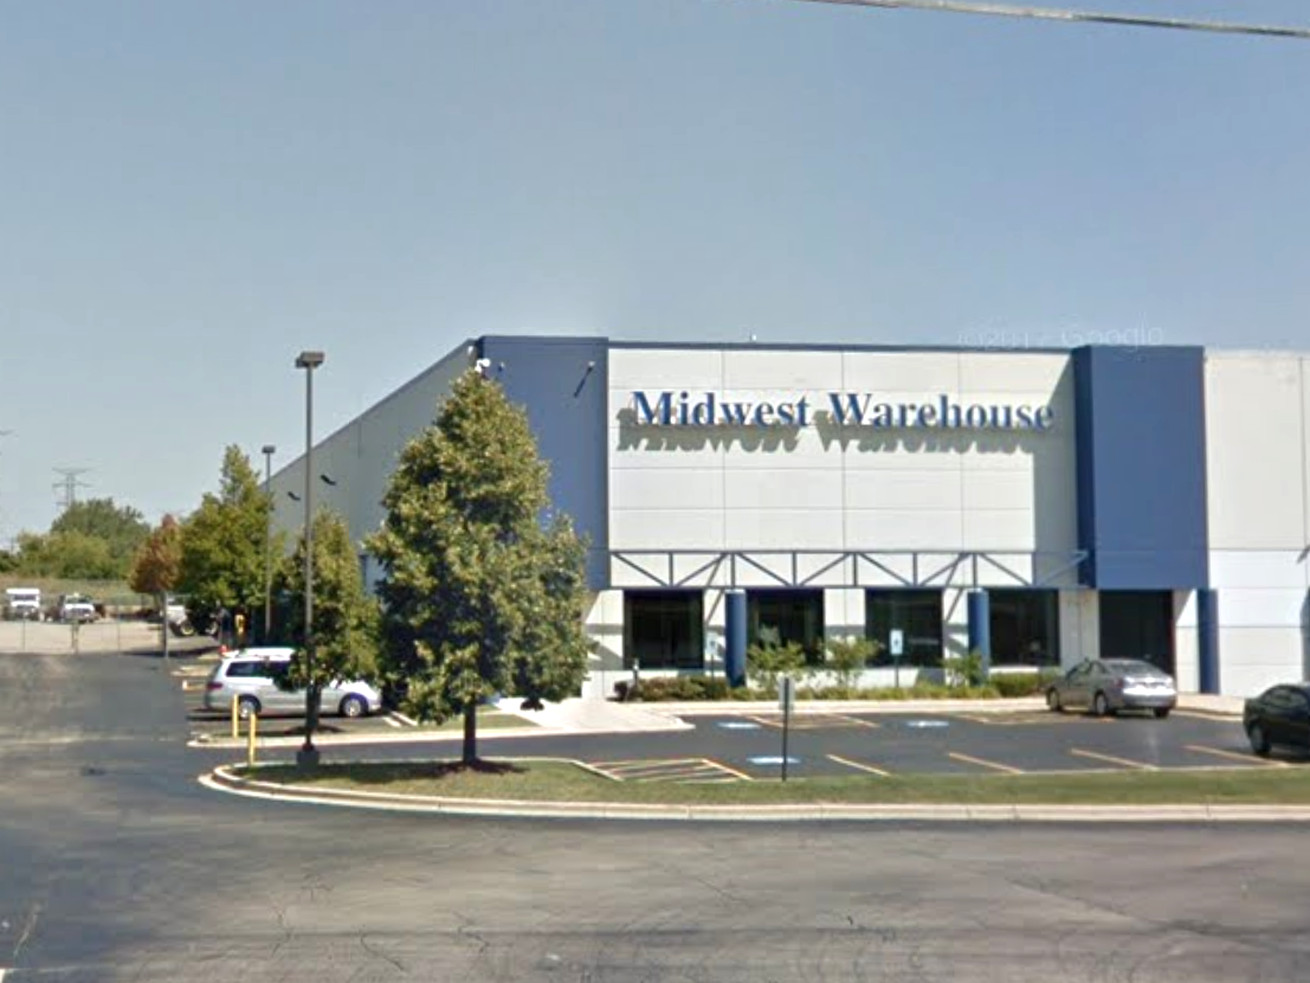 An outbreak of coronavirus was linked to a luncheon at Midwest Warehouse on Diehl Road in Naperville, according to the Occupational Safety and Health Administration.